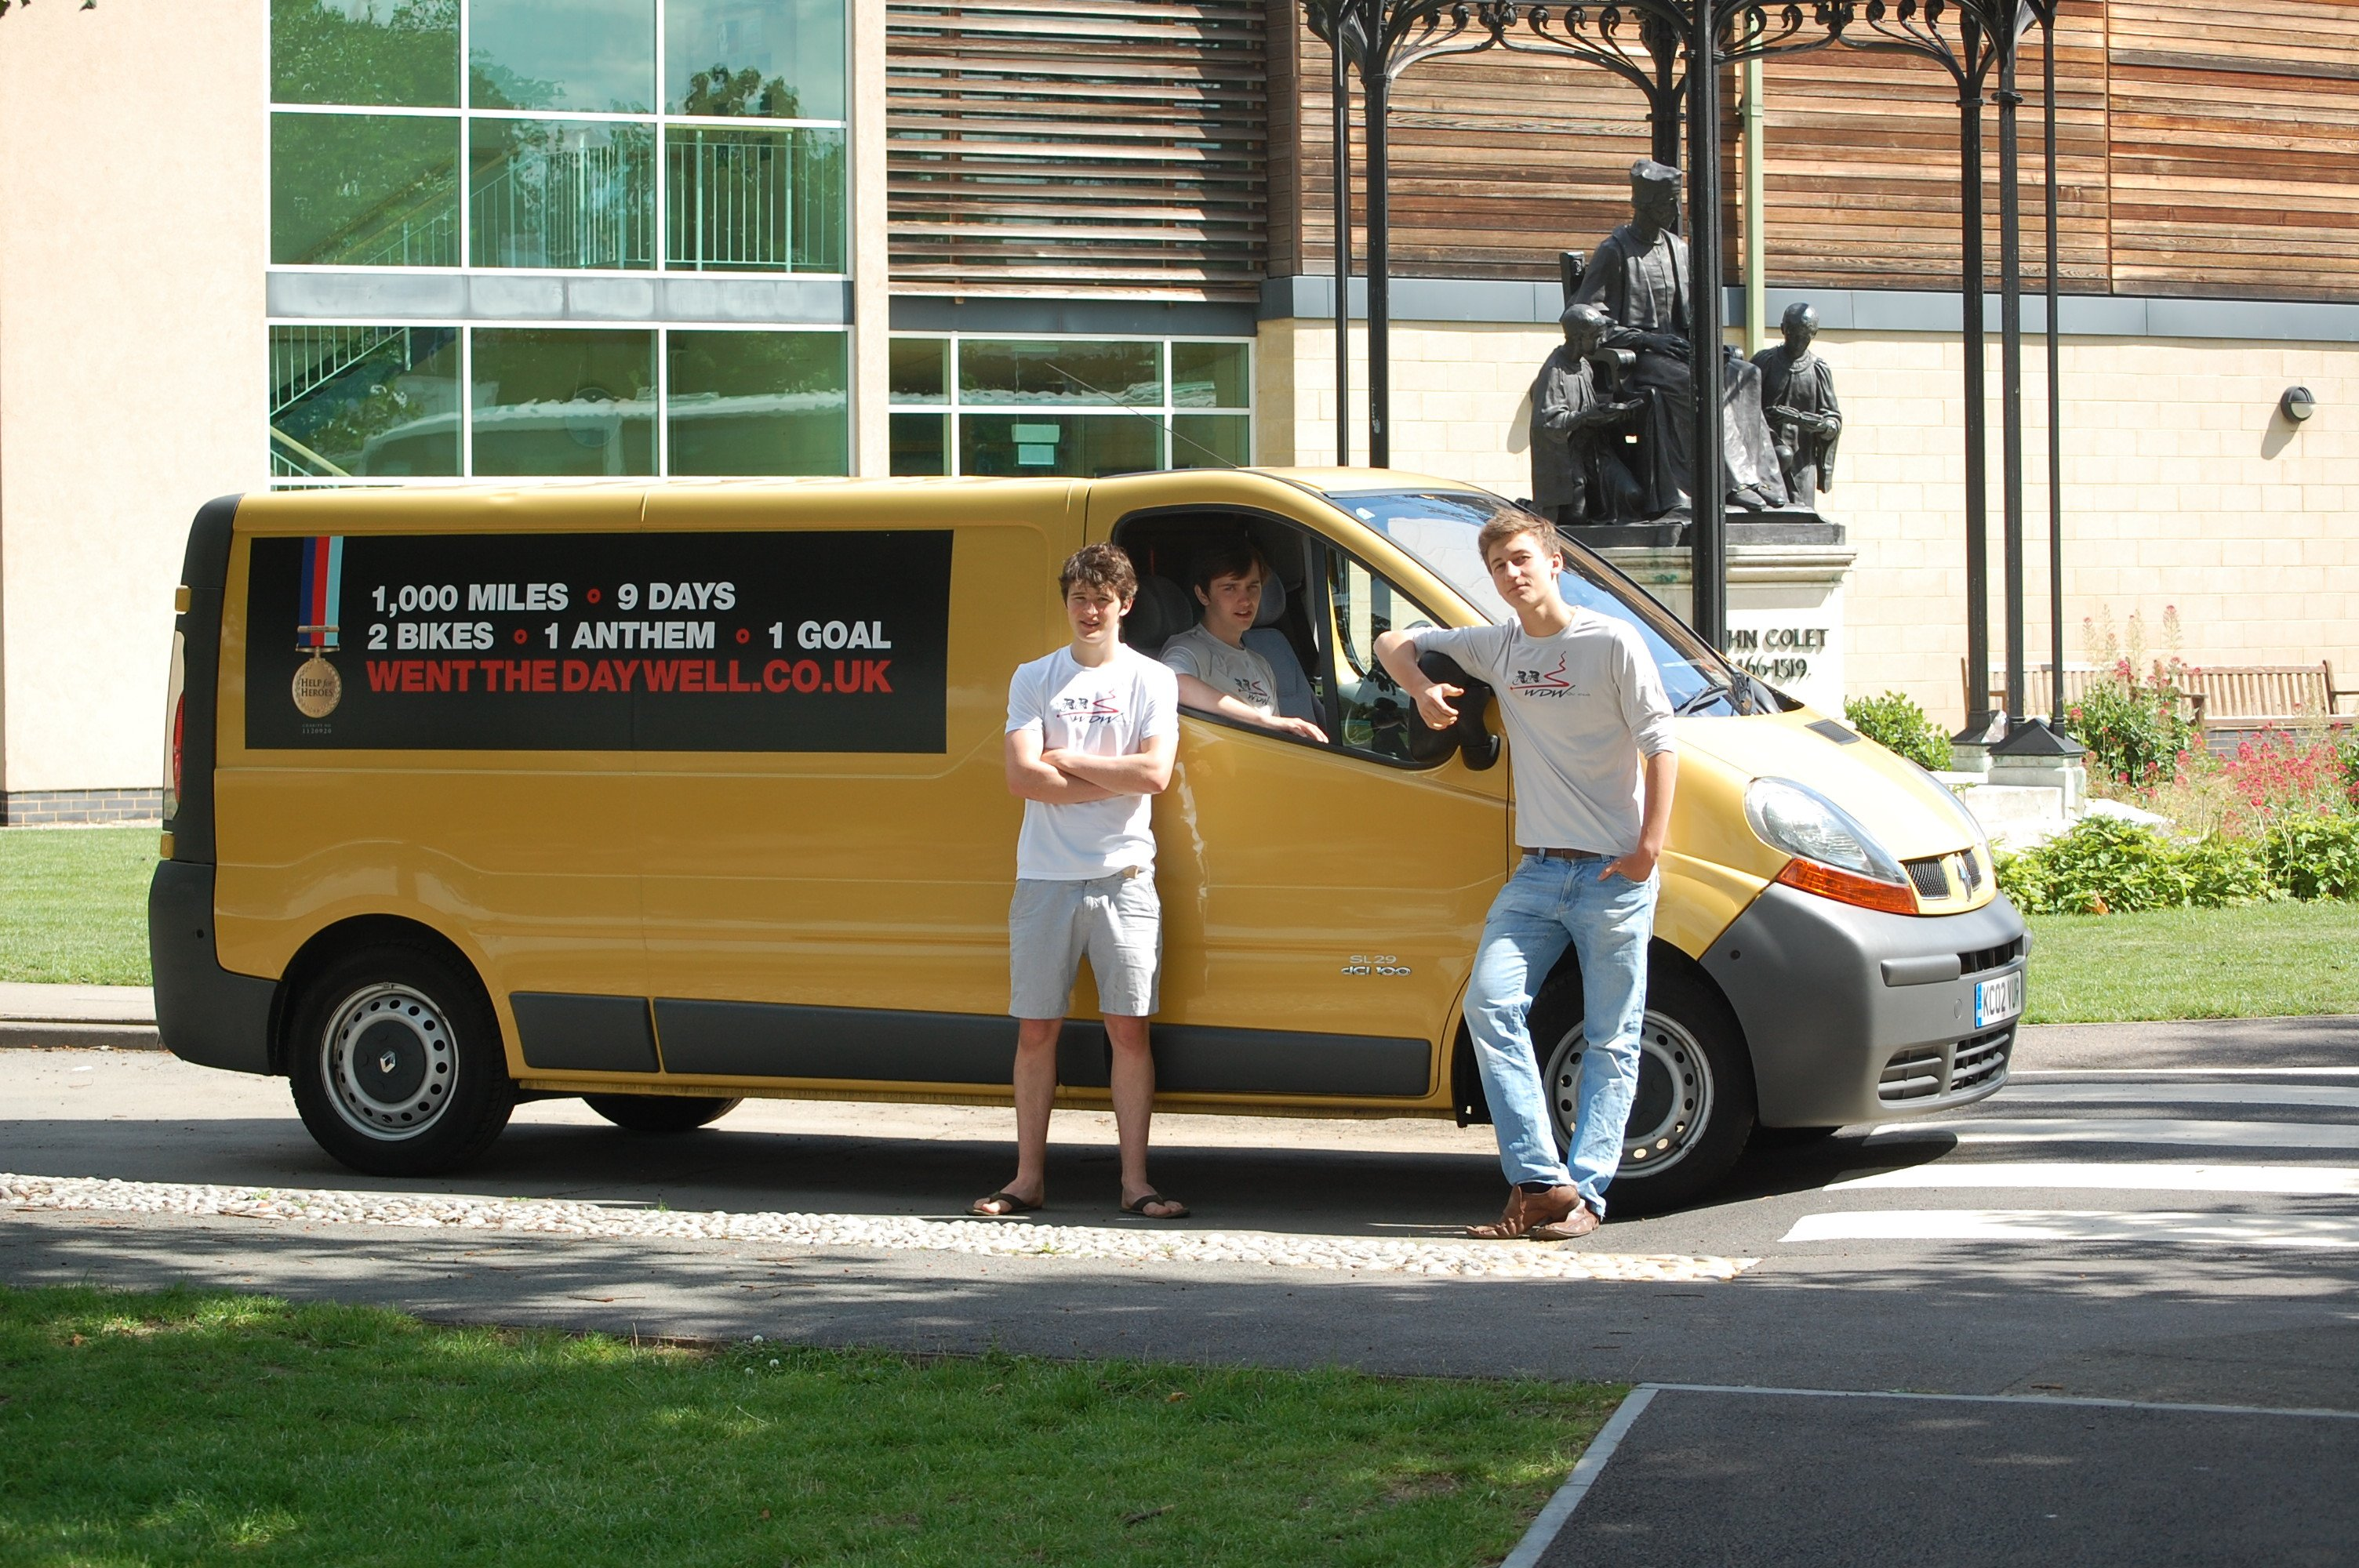 Us and the yellow van